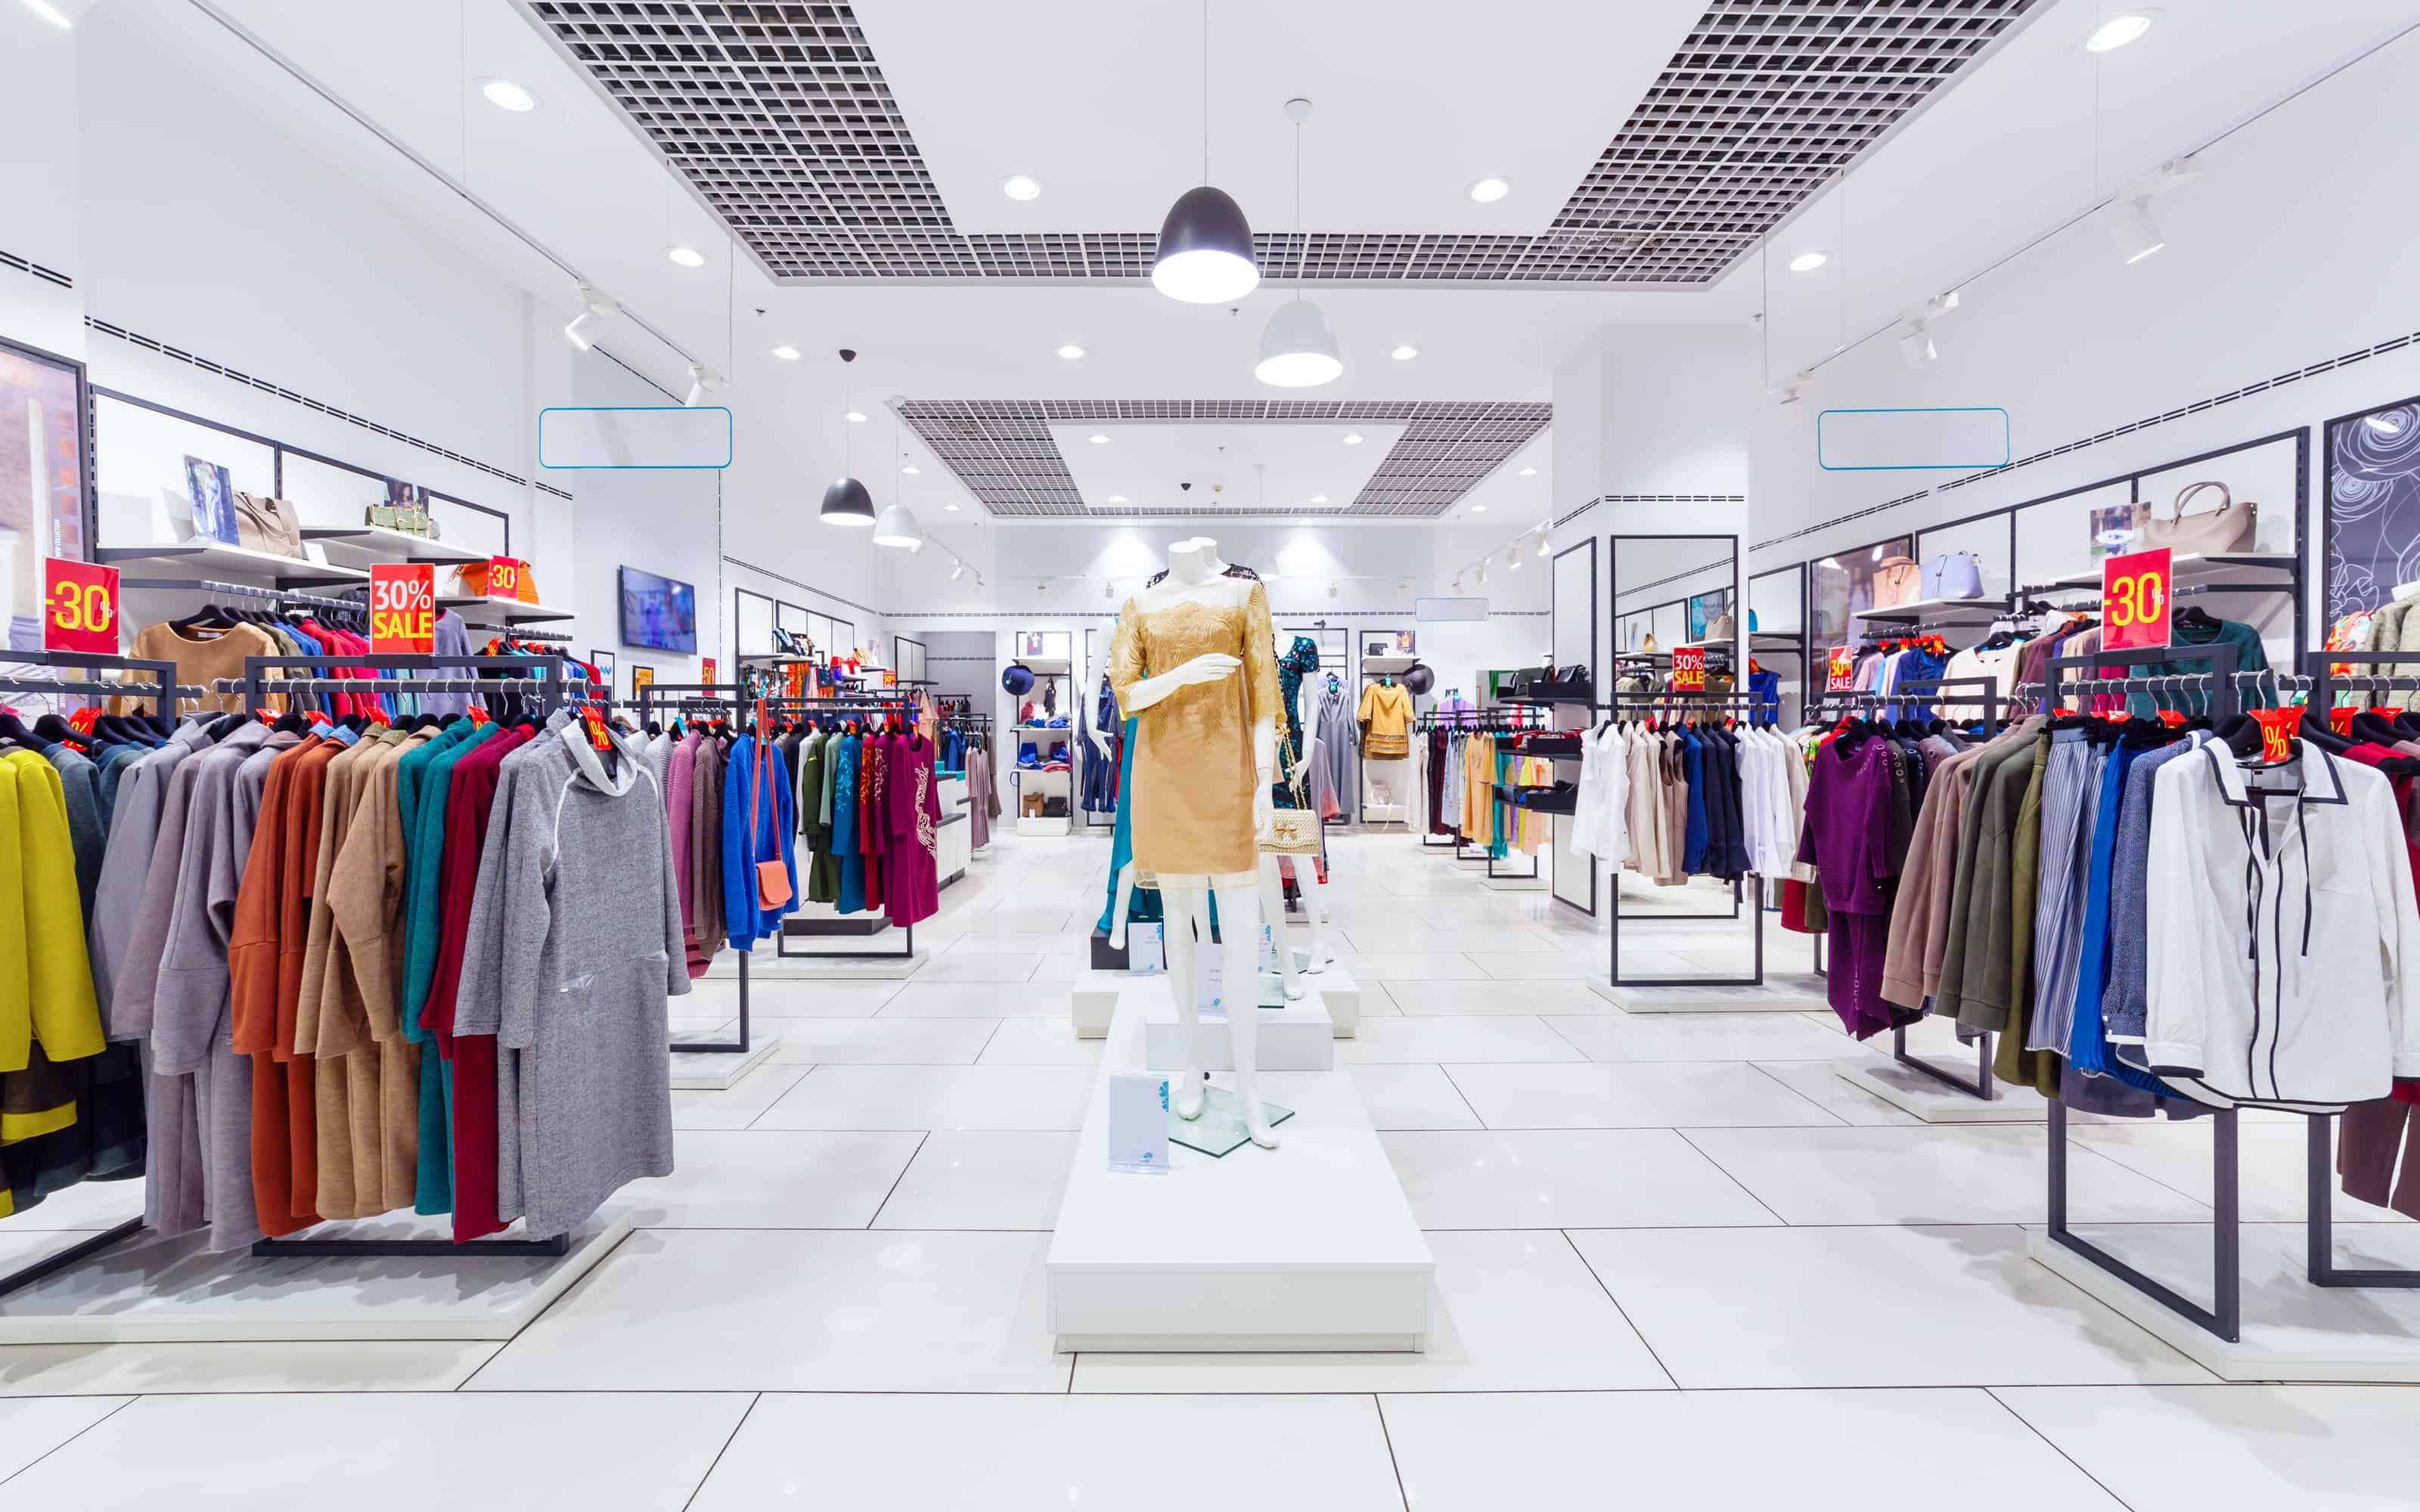 Interior of fashion clothing store for women